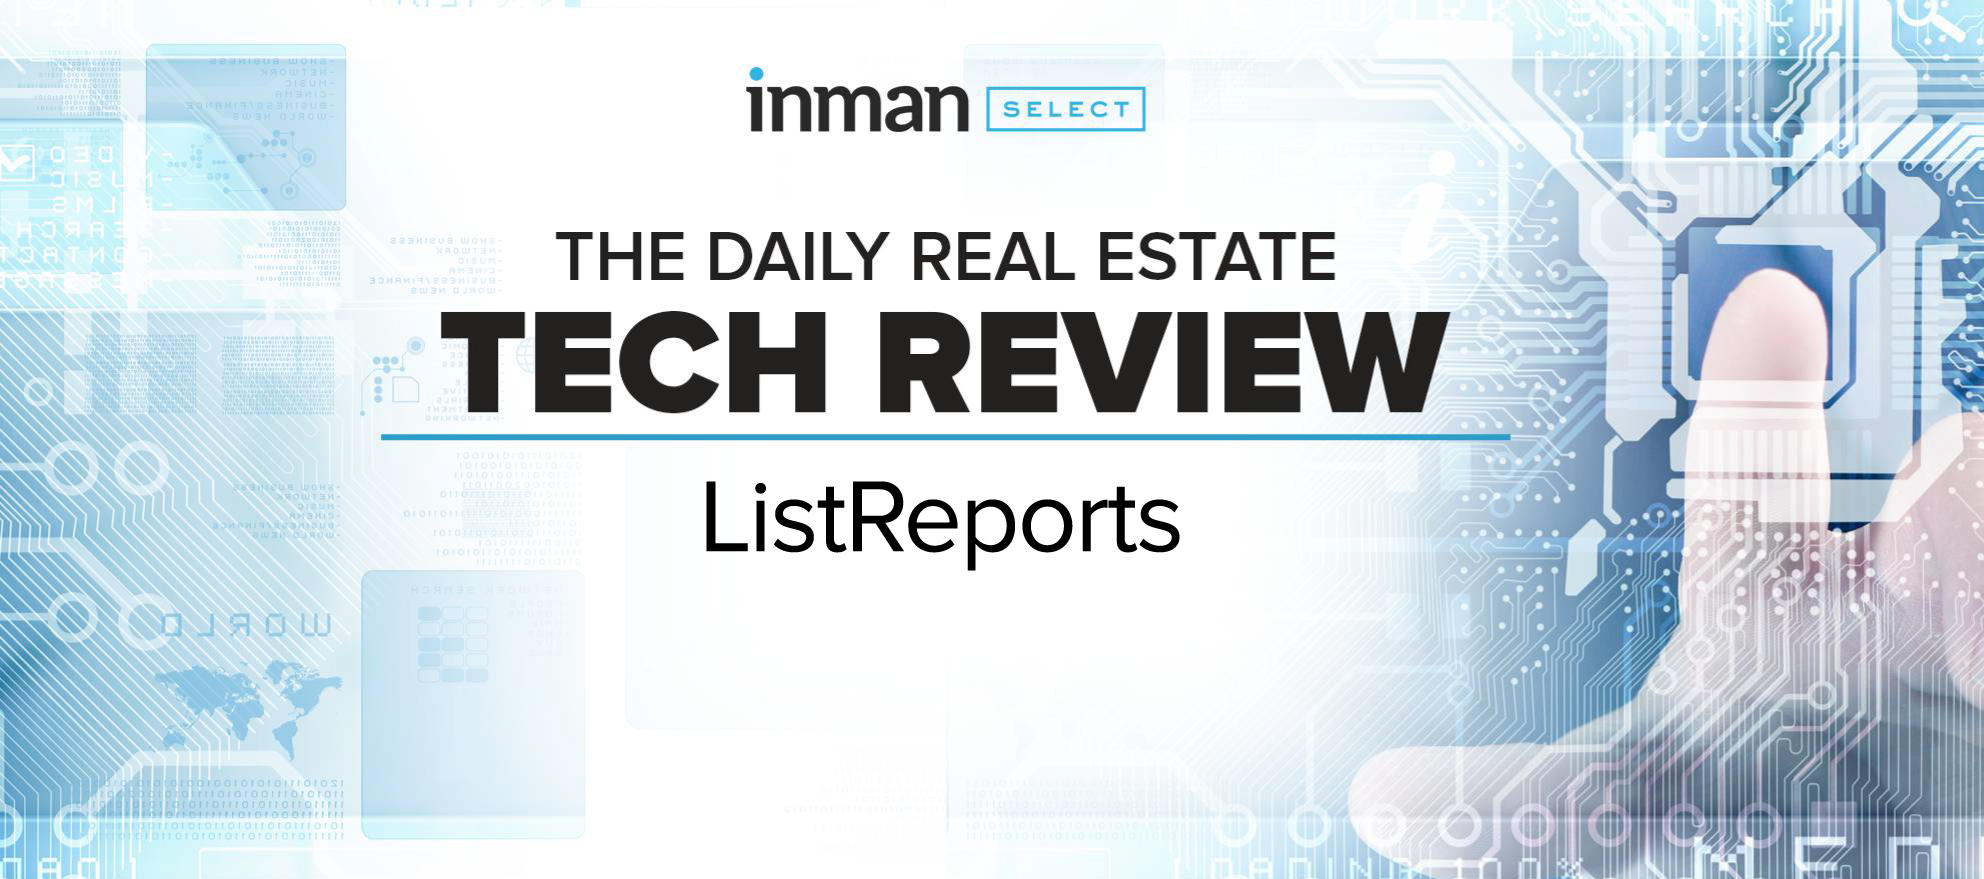 ListReports is a text-driven property marketing service that favors smart design and affordability